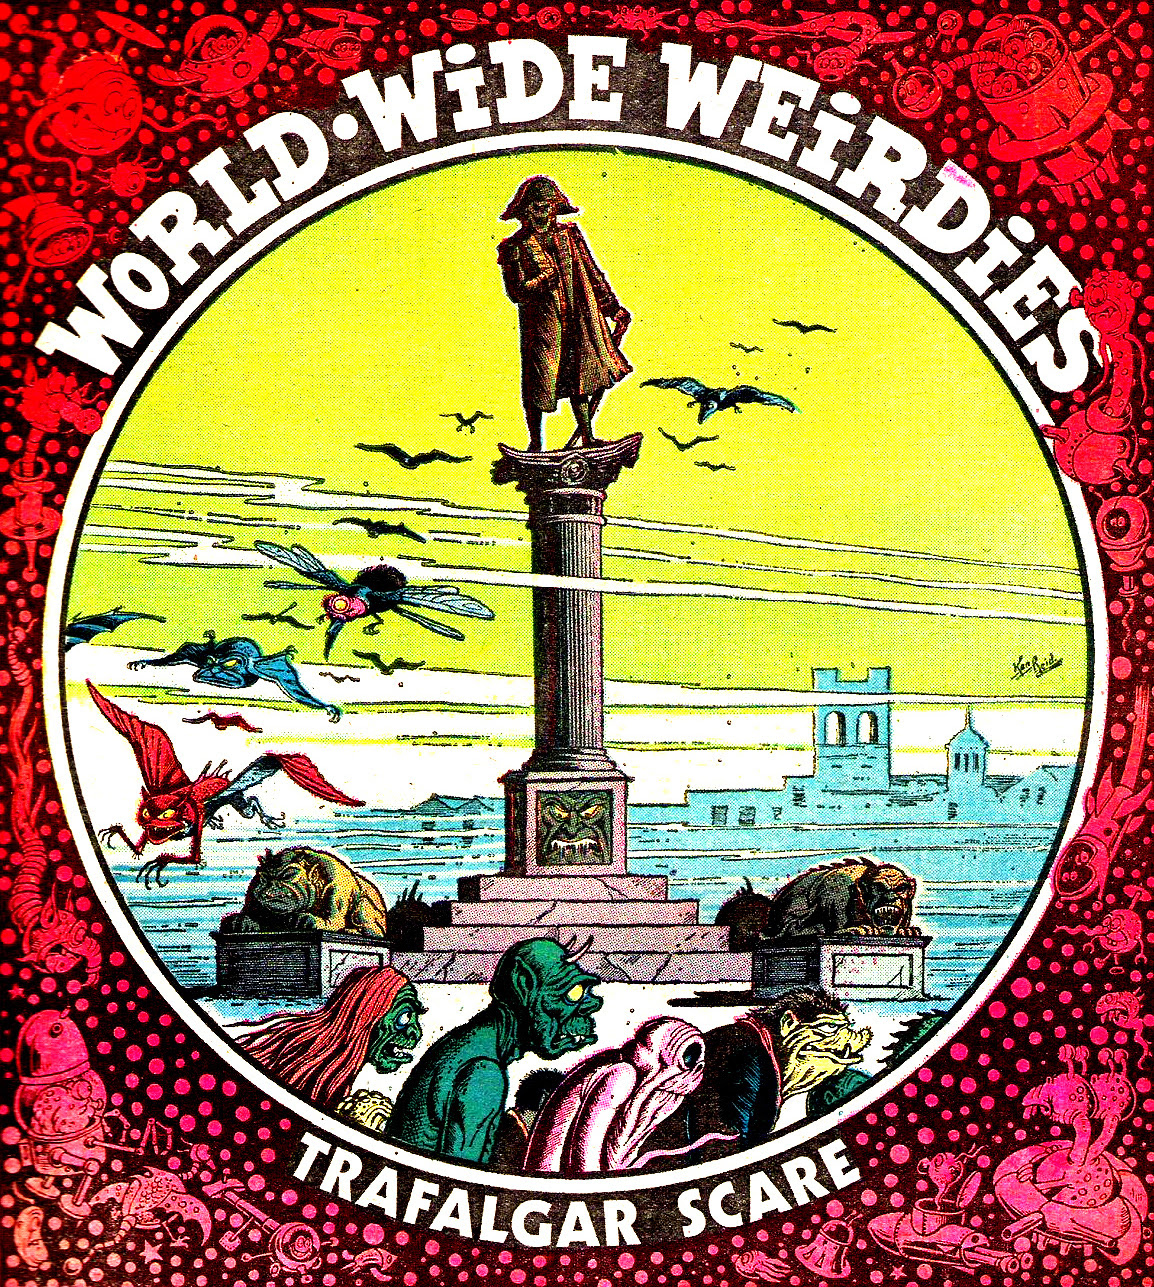 Ken Reid - World Wide Weirdies 40